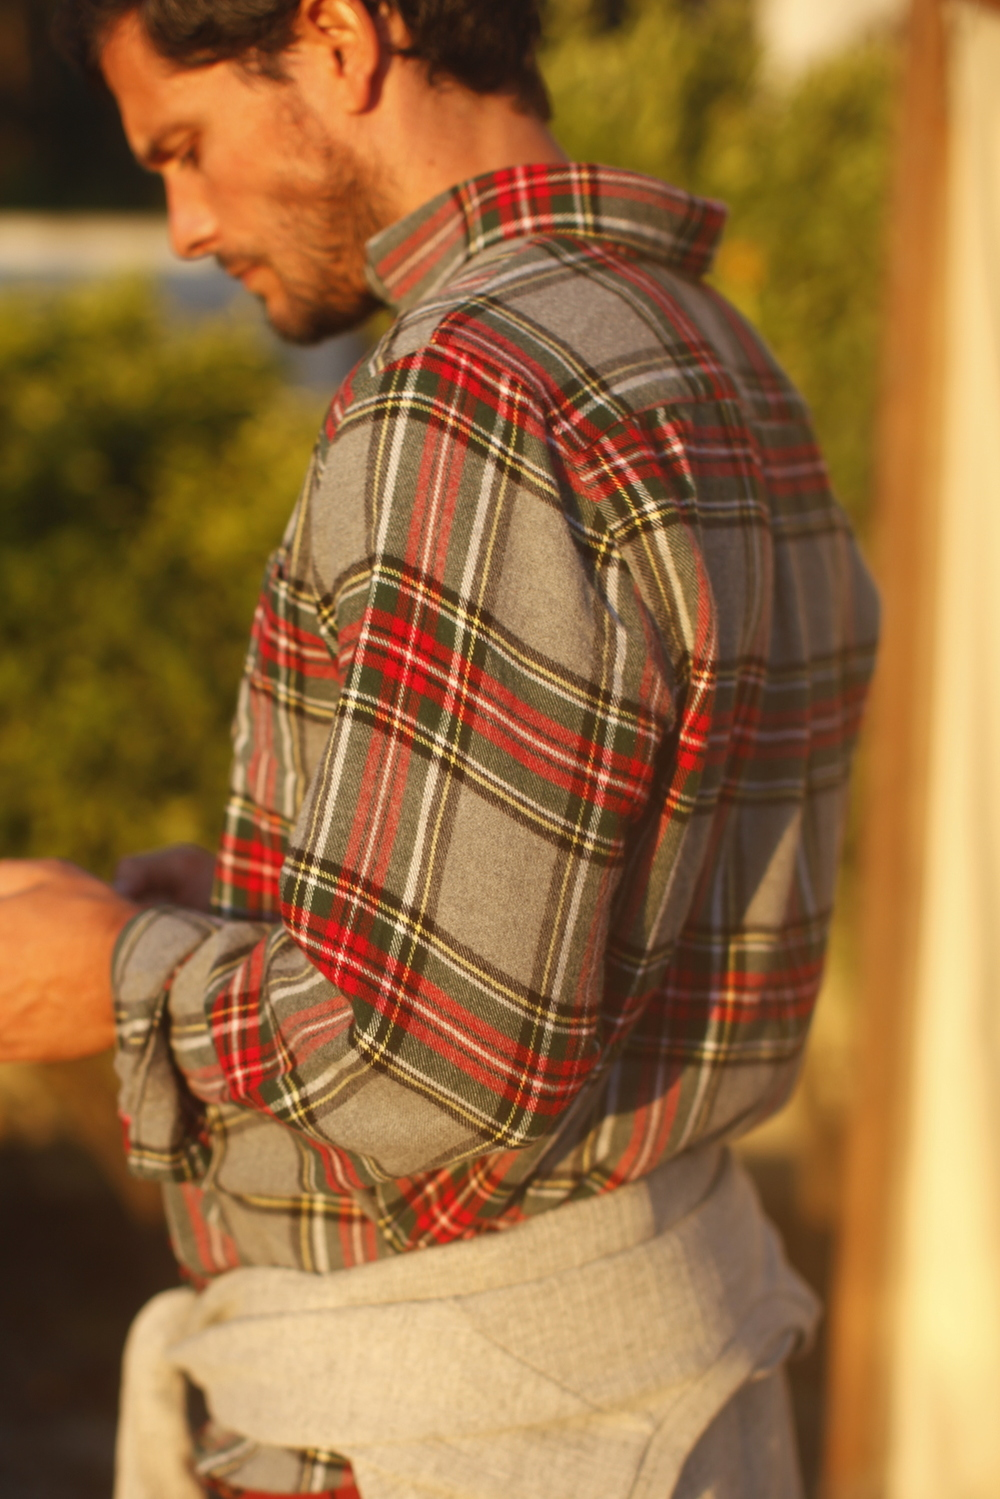 Flannel shirt by Portuguese flannel.